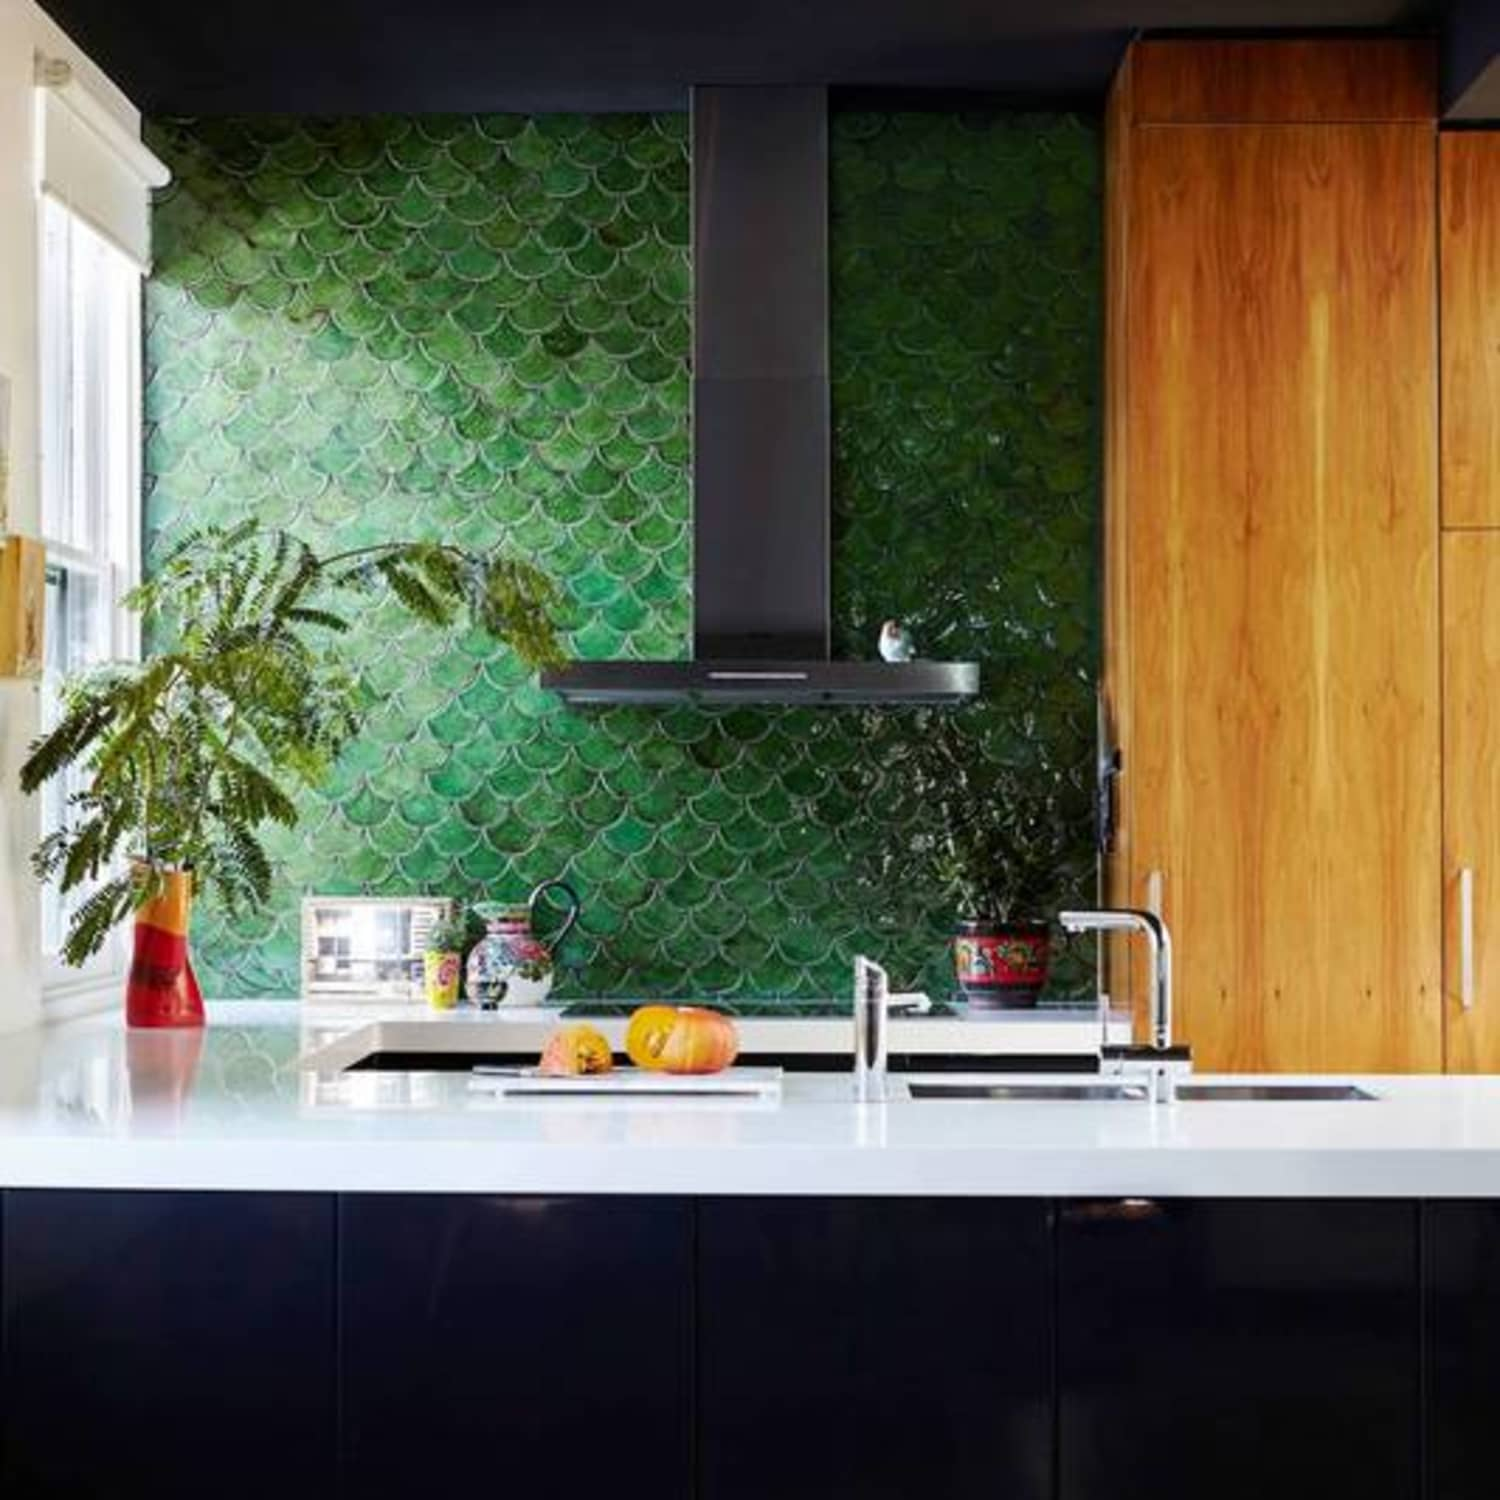 - Mermaid & Fish Scale Tiles In The Kitchen & Bathroom Apartment